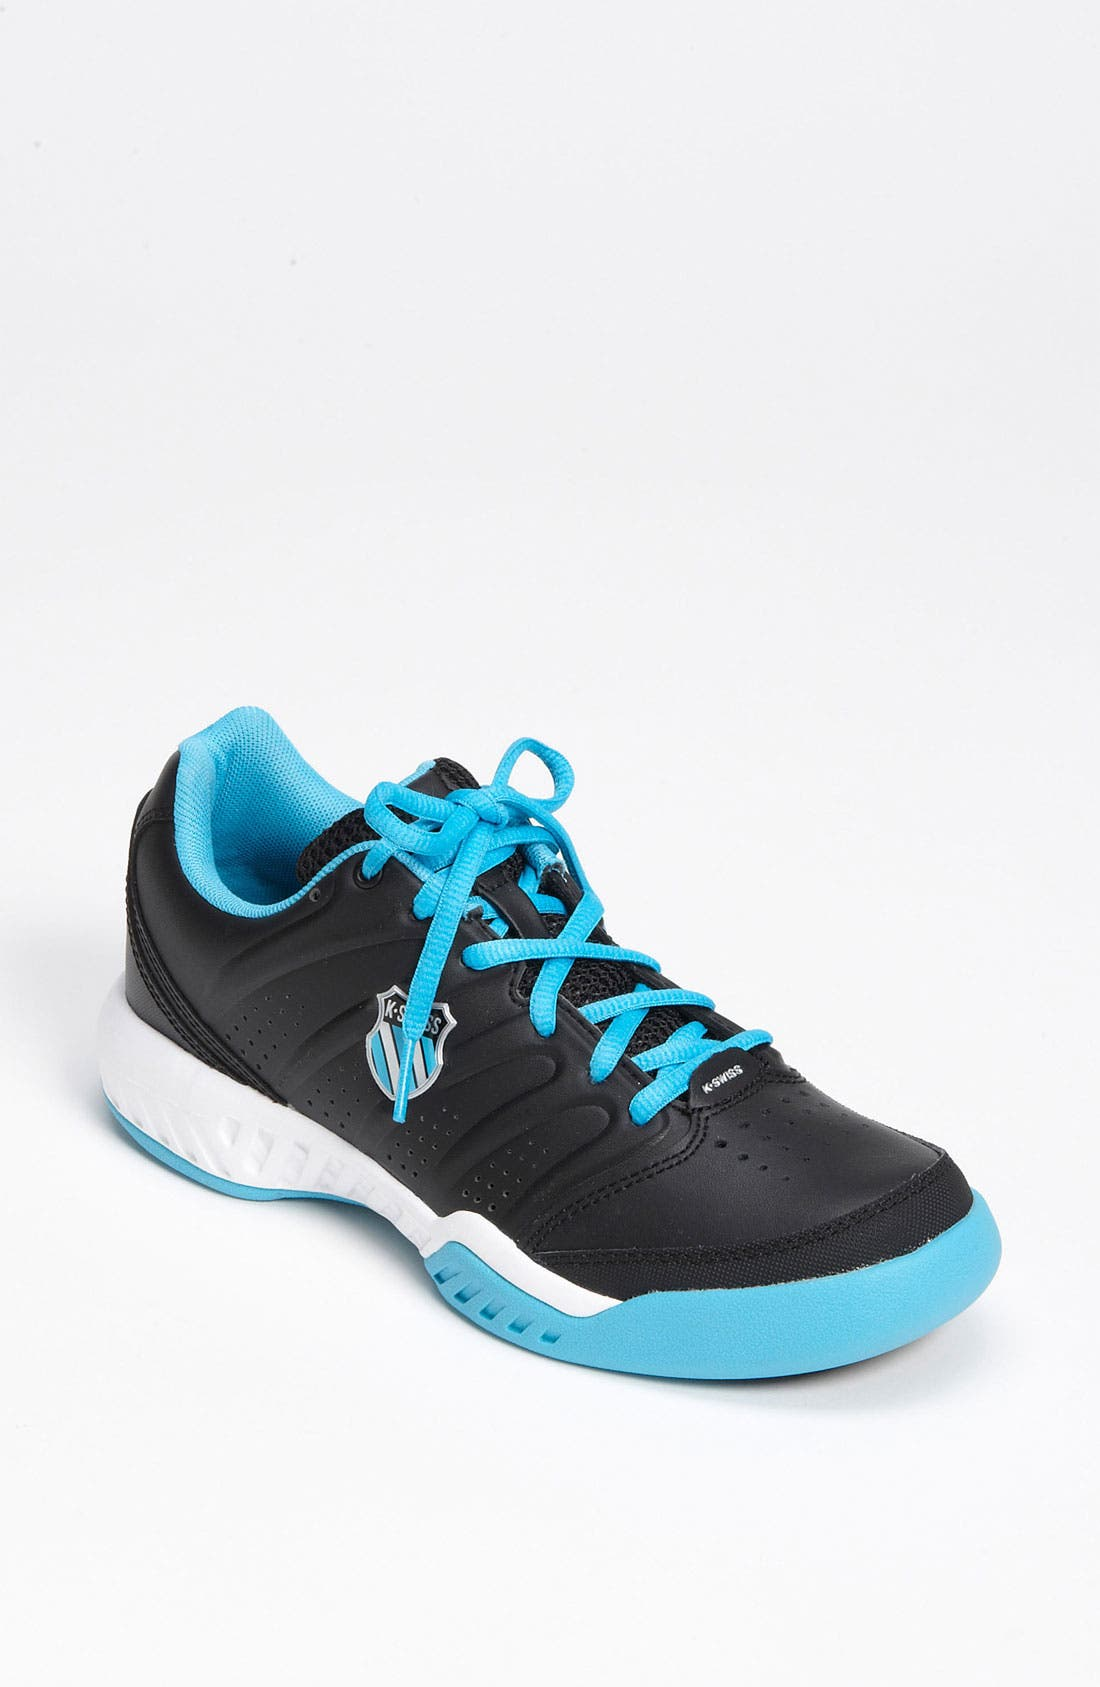 Main Image - K-Swiss 'Ultrascendor 11' Tennis Shoe (Women)